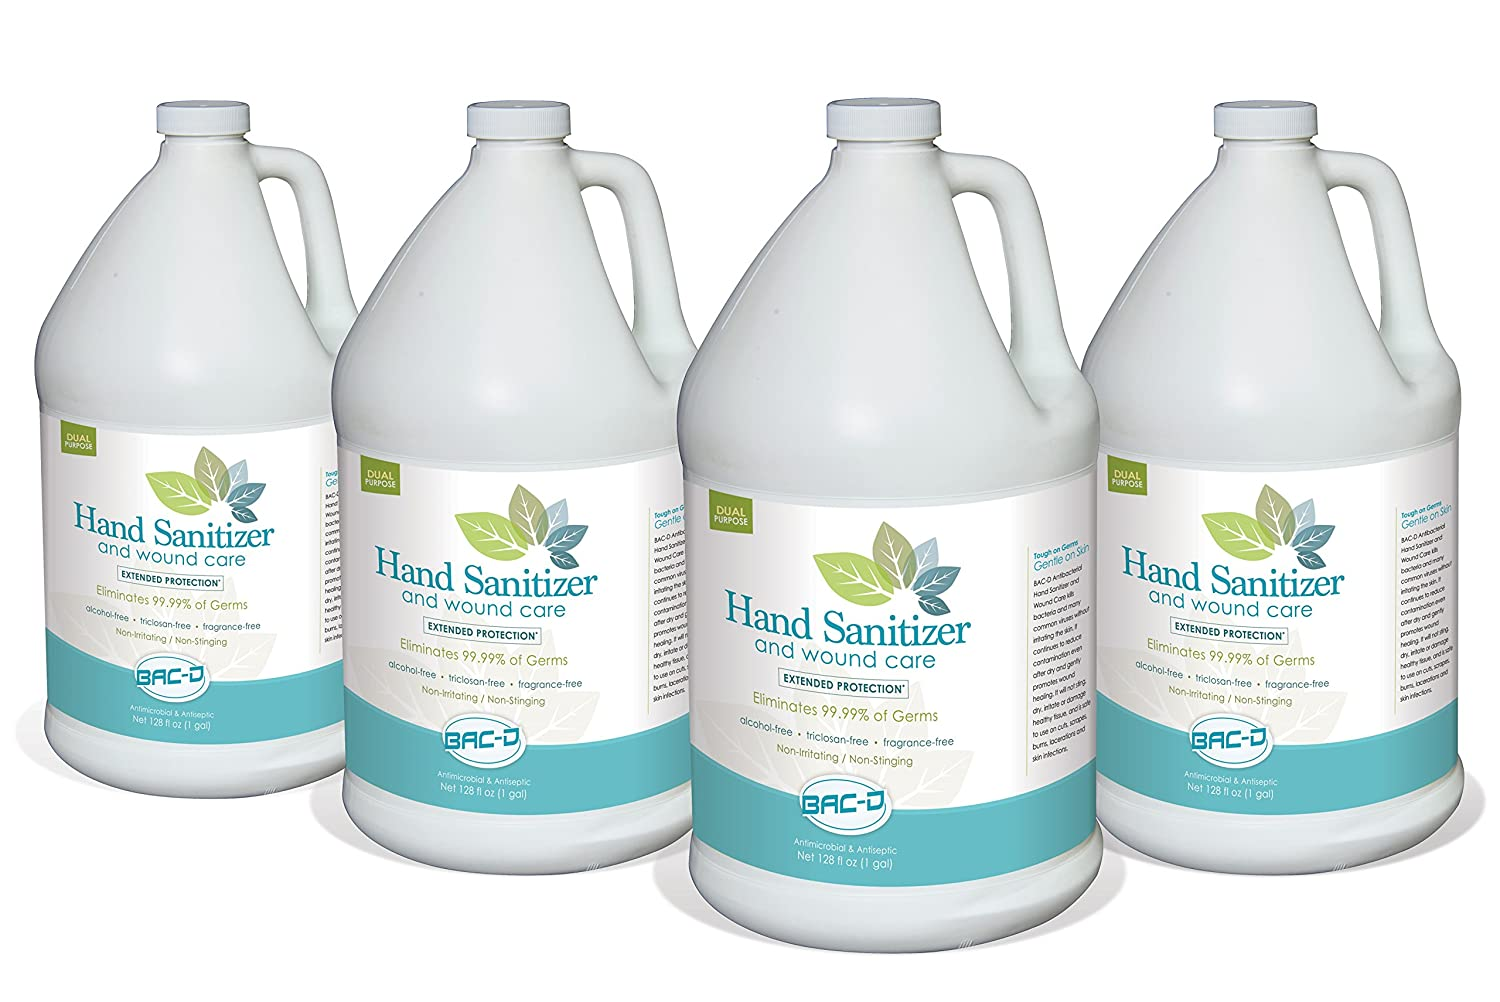 BAC-D 635 Alcohol Free Hand Sanitizer and Wound Care, 1 Gallon Refill, 128 oz. (Pack of 4)